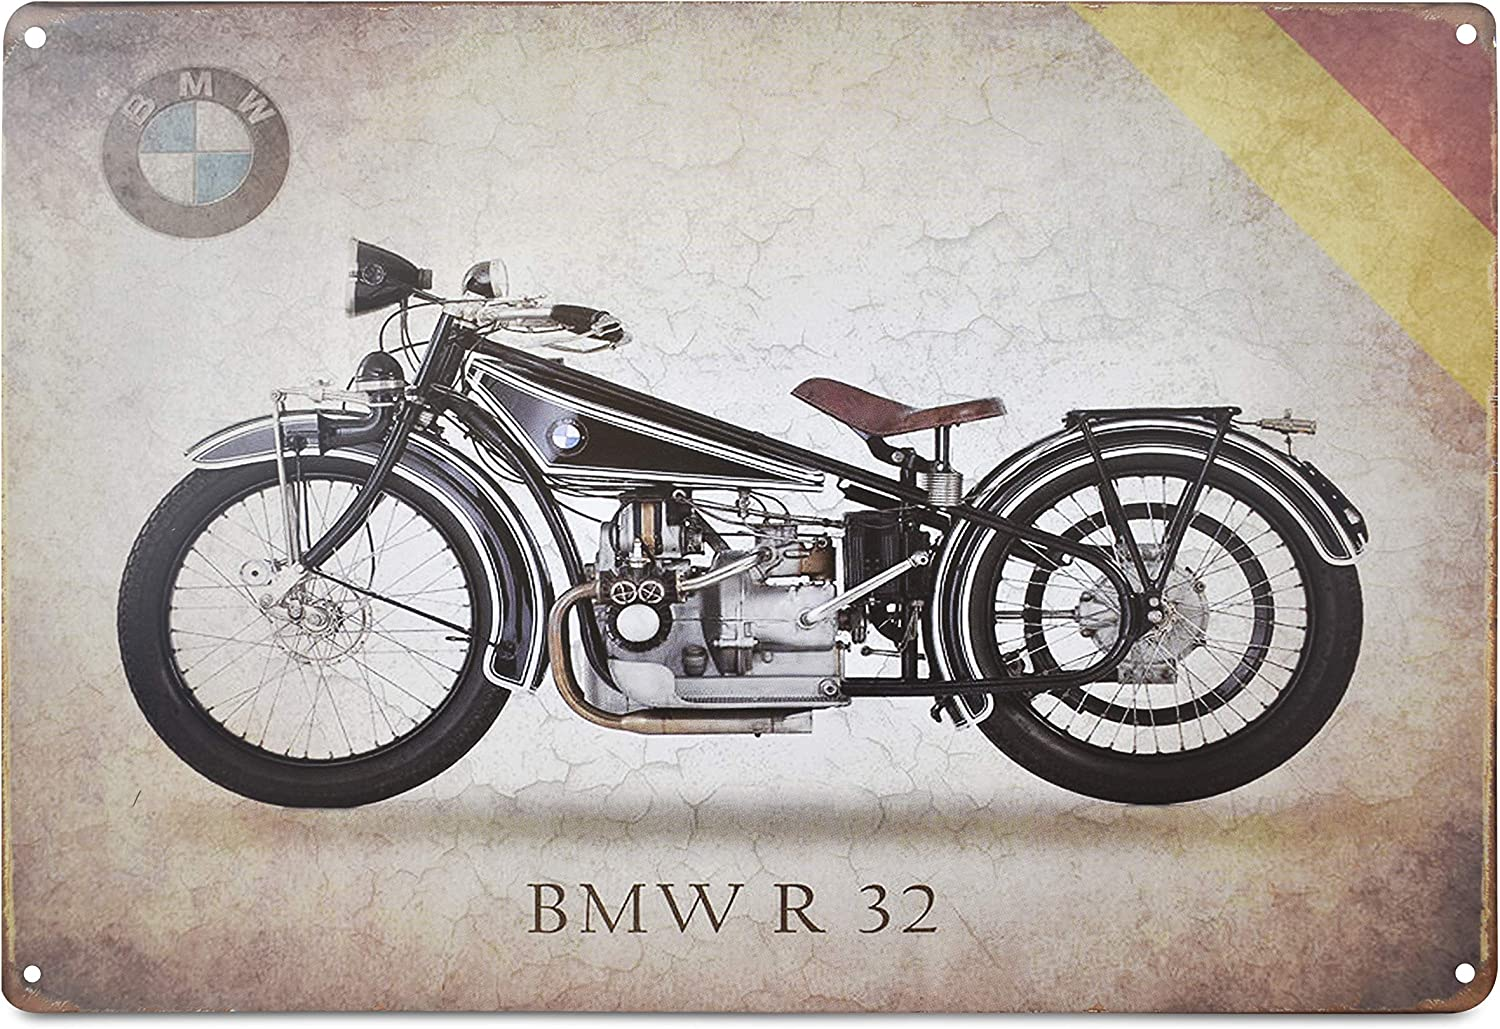 K&H BMW R32 Motorcycle Retro Metal Tin Sign Posters Wall Decor 12X8-Inch (BMW R32)